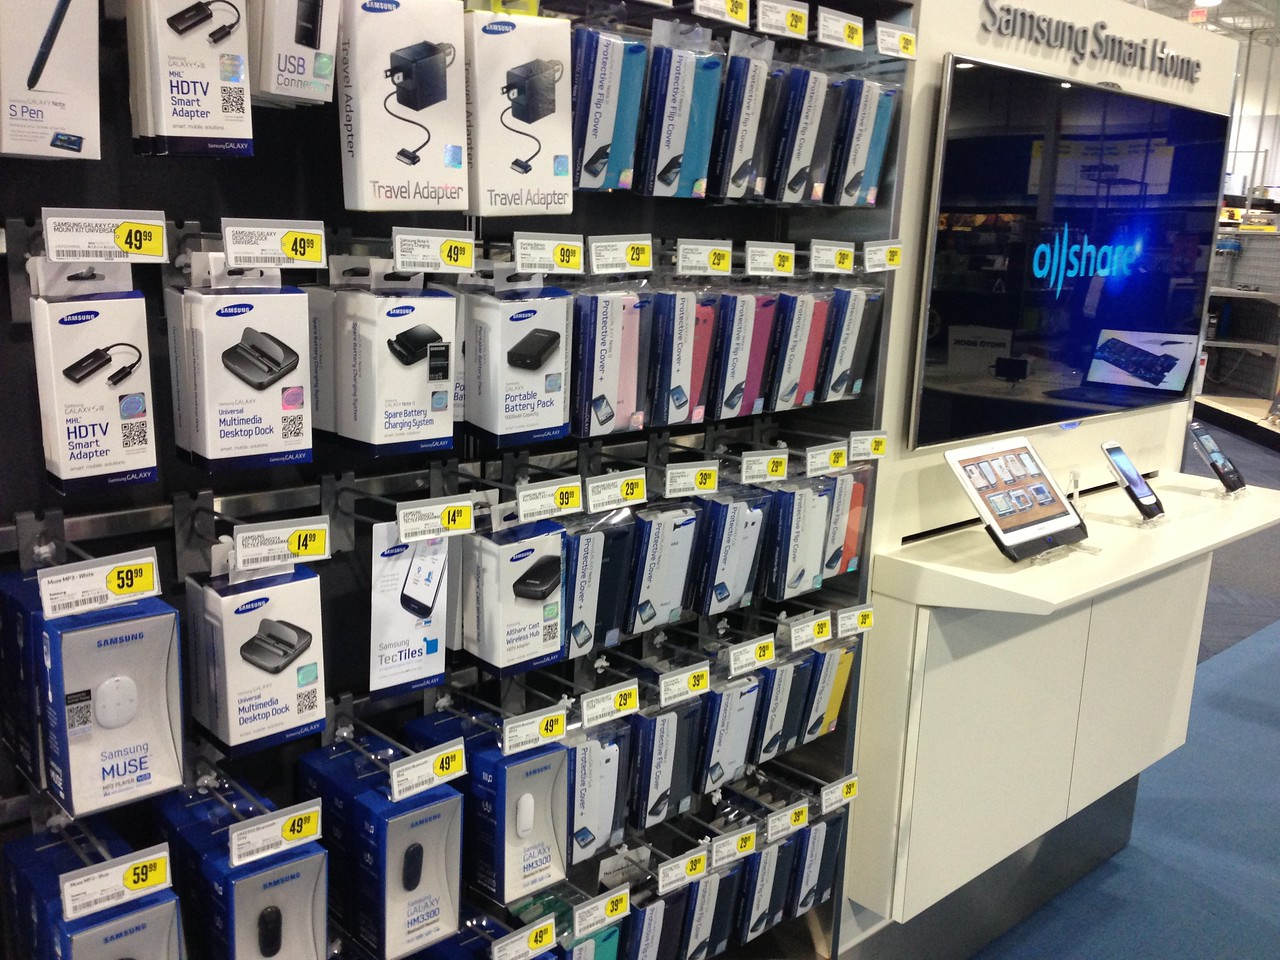 While Apple is known for the wide range of accessories made for its gear, Samsung hopes to show off its own broad array of add-ons in a dedicated area of its Samsung Experience Shops inside Best Buy.